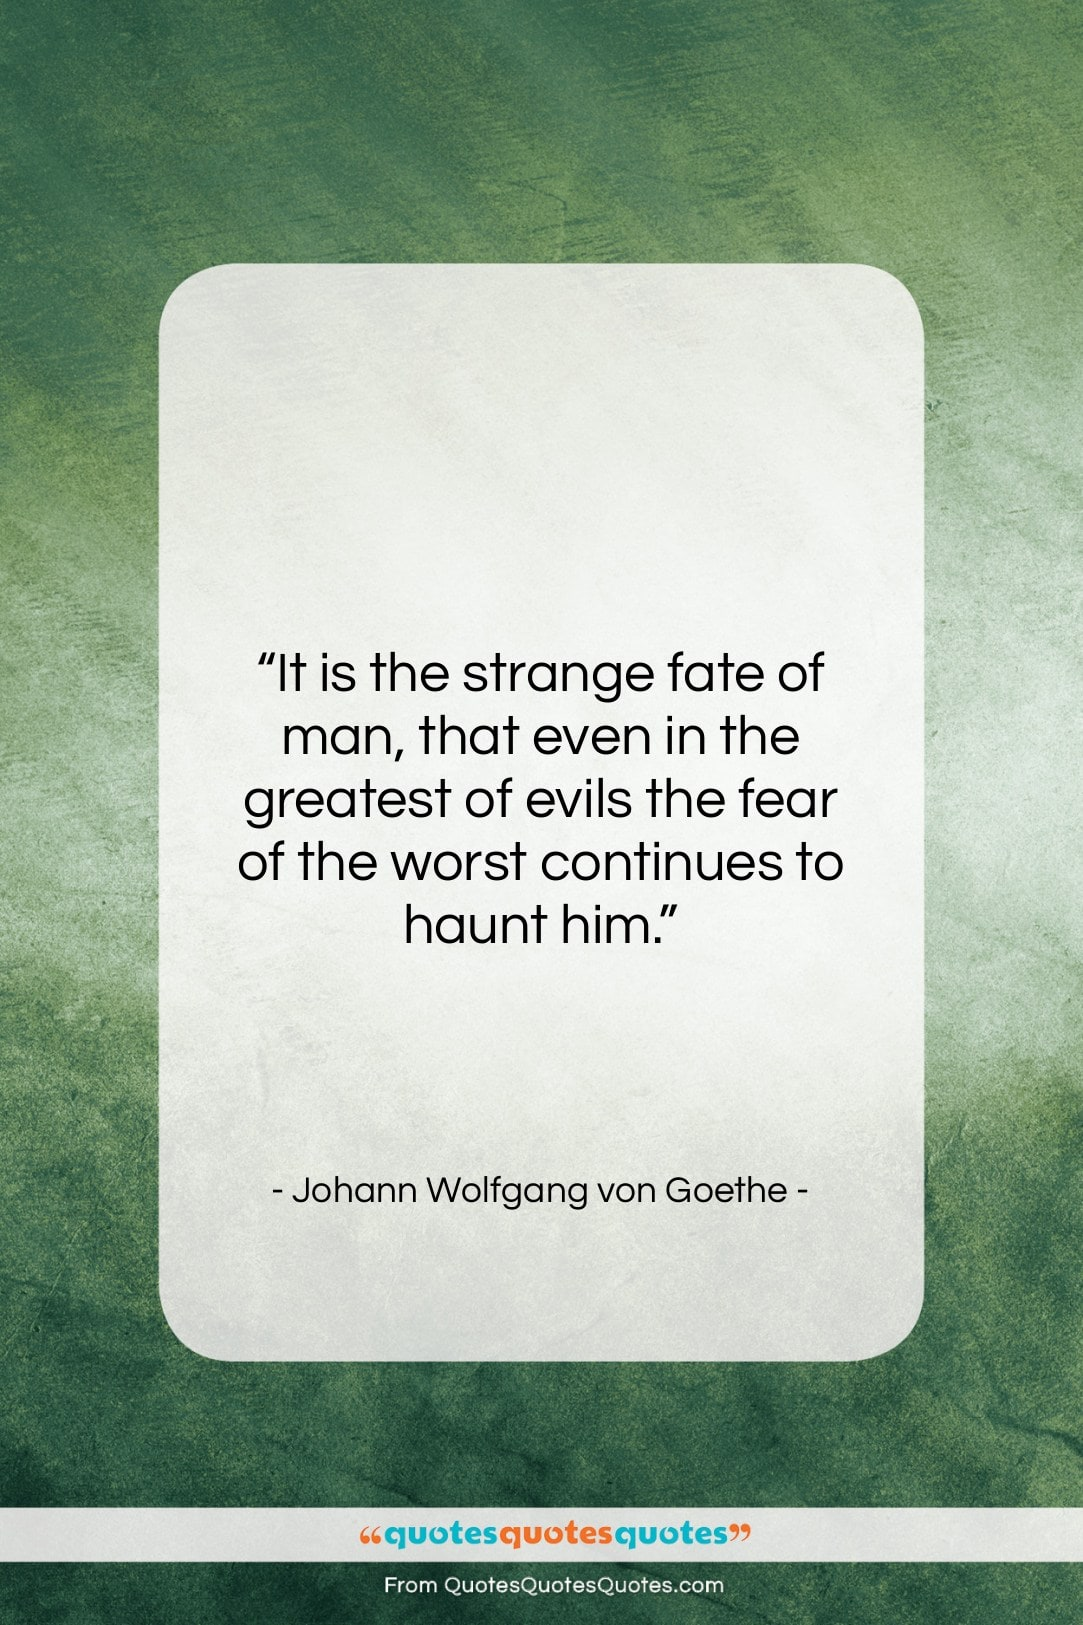 """Johann Wolfgang von Goethe quote: """"It is the strange fate of man,…""""- at QuotesQuotesQuotes.com"""